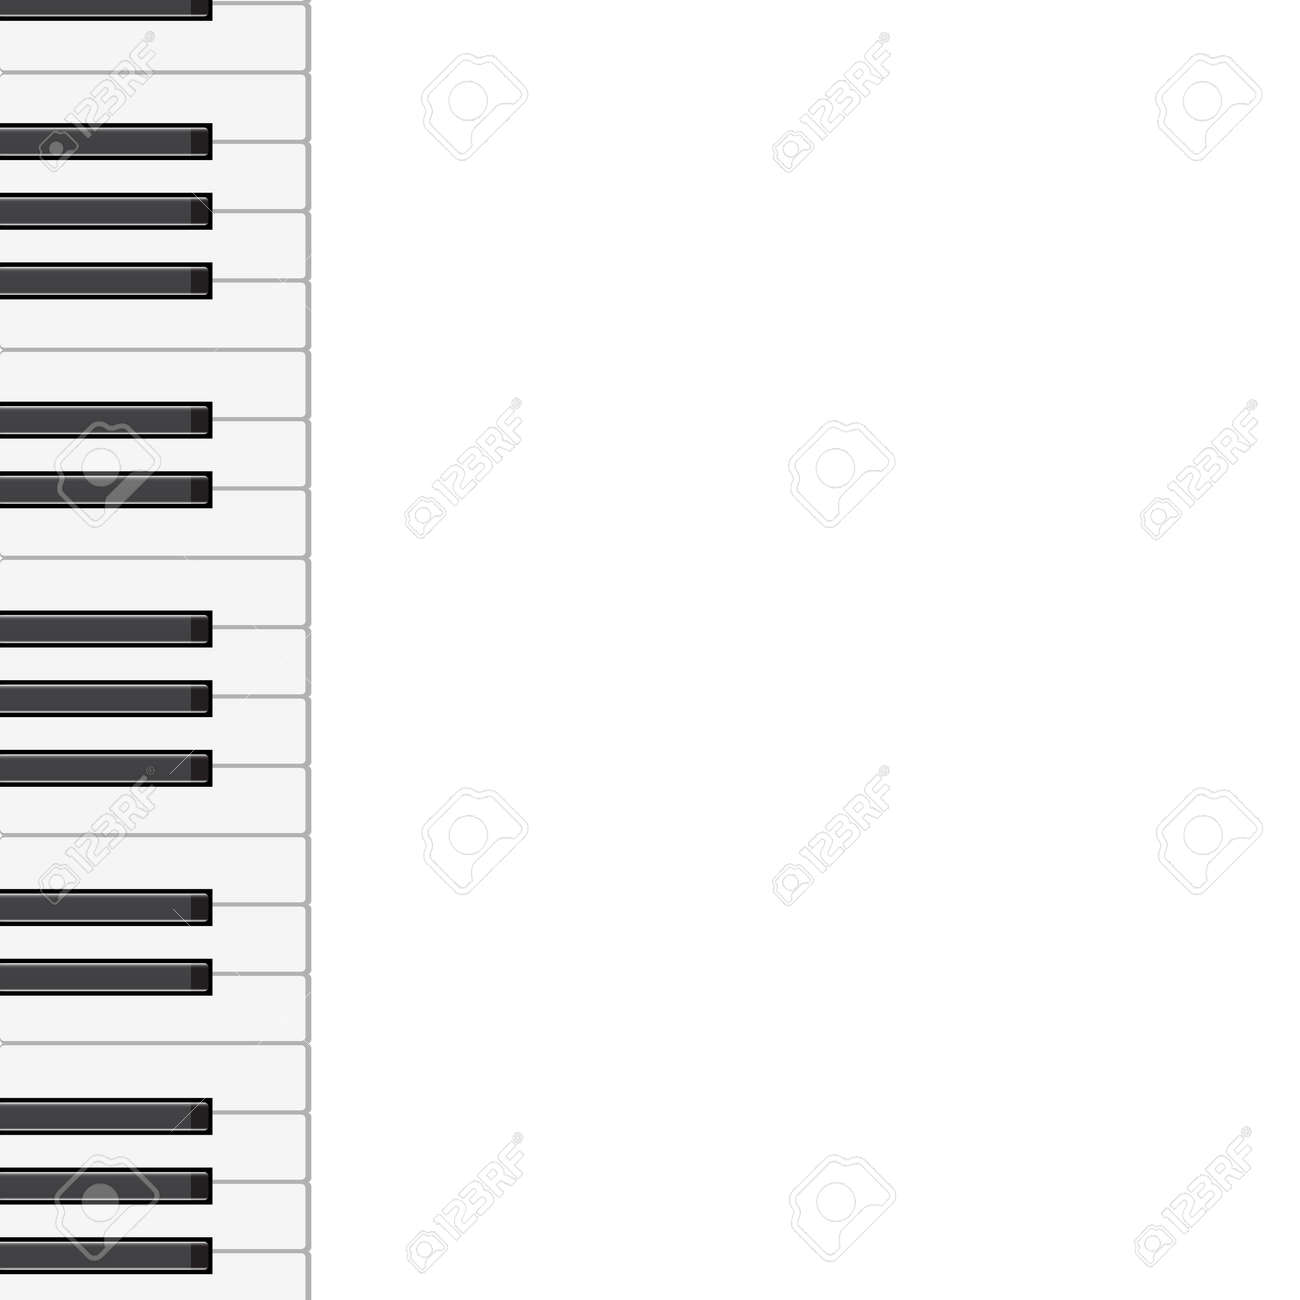 music background with piano keys   illustration Stock Vector - 17603299